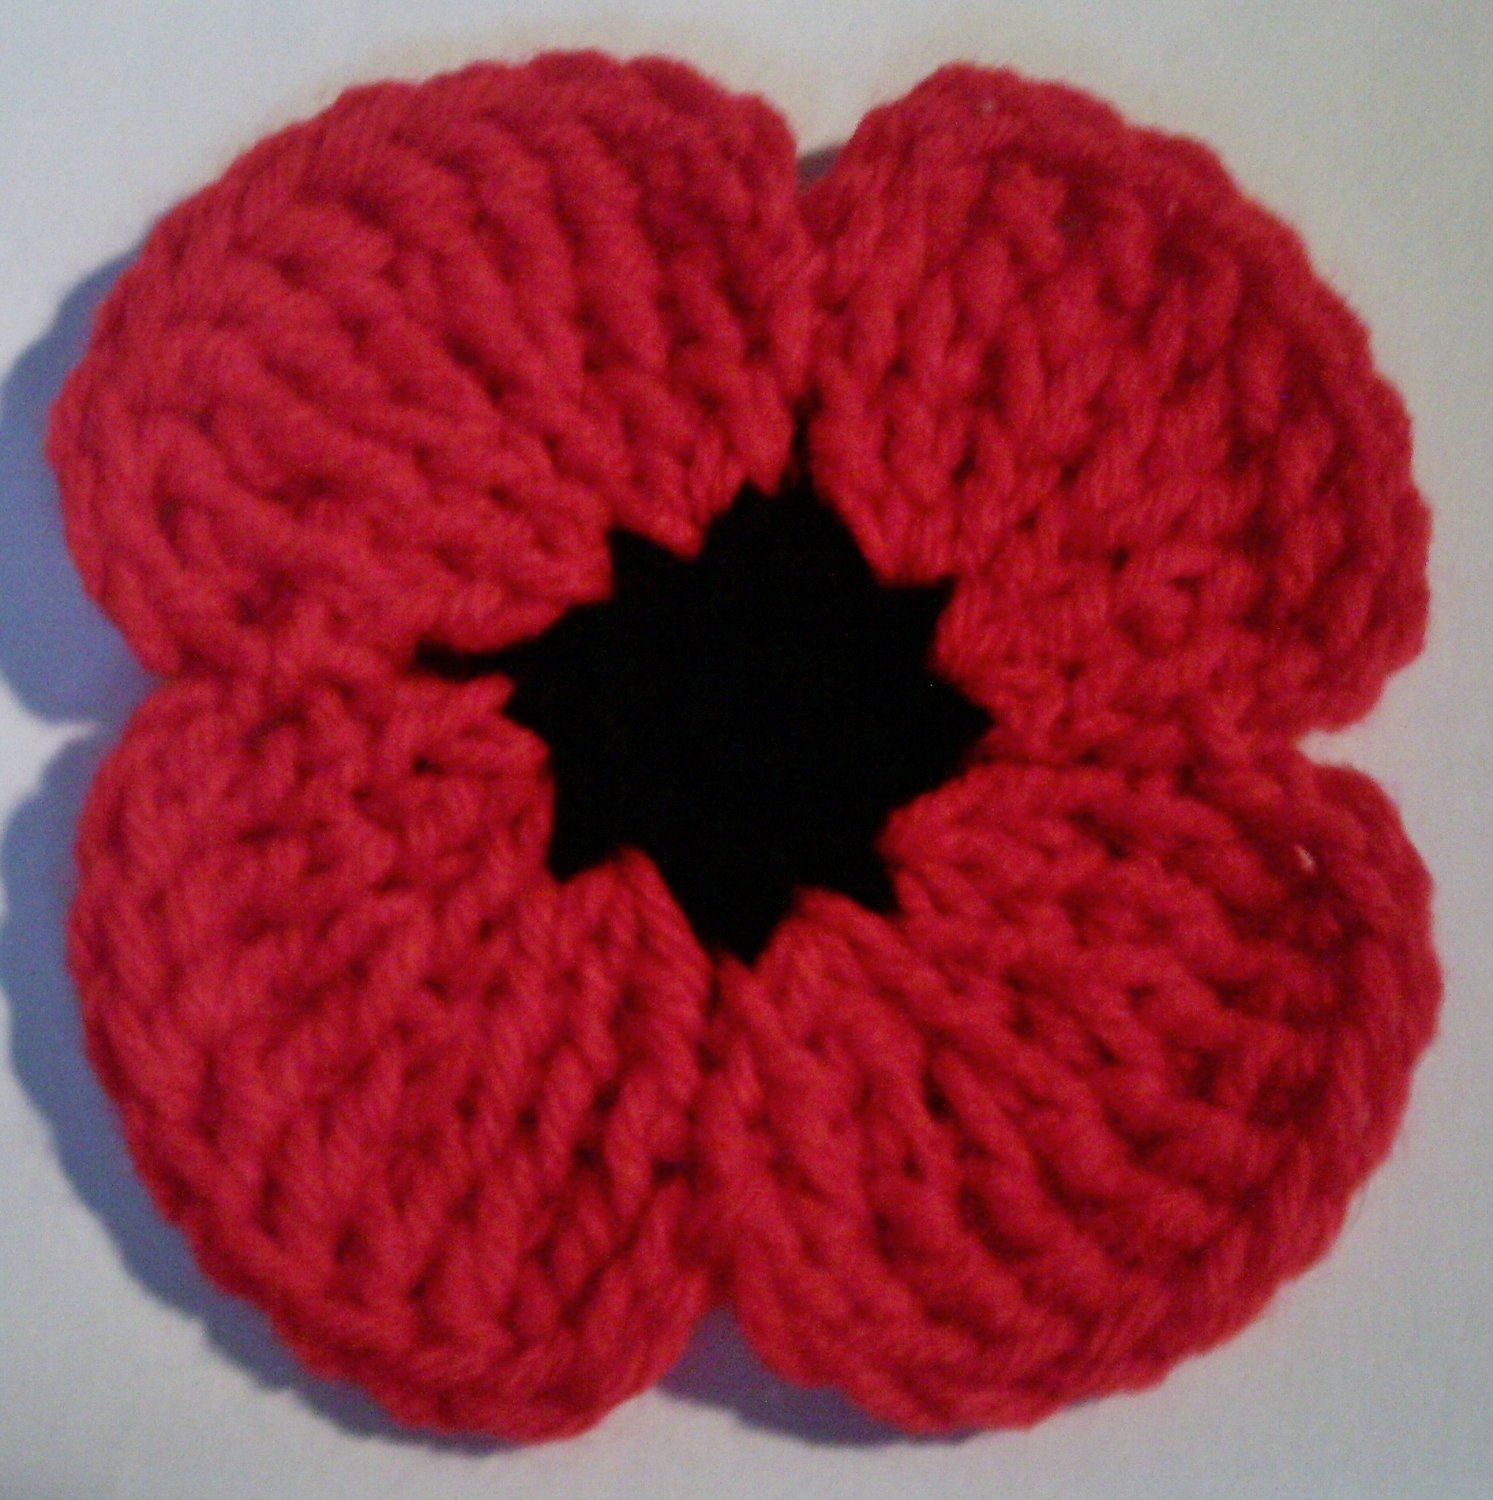 Free easy crochet poppy pattern manet for poppy coasters hot pads crochet patterns pdf file 403 bankloansurffo Image collections